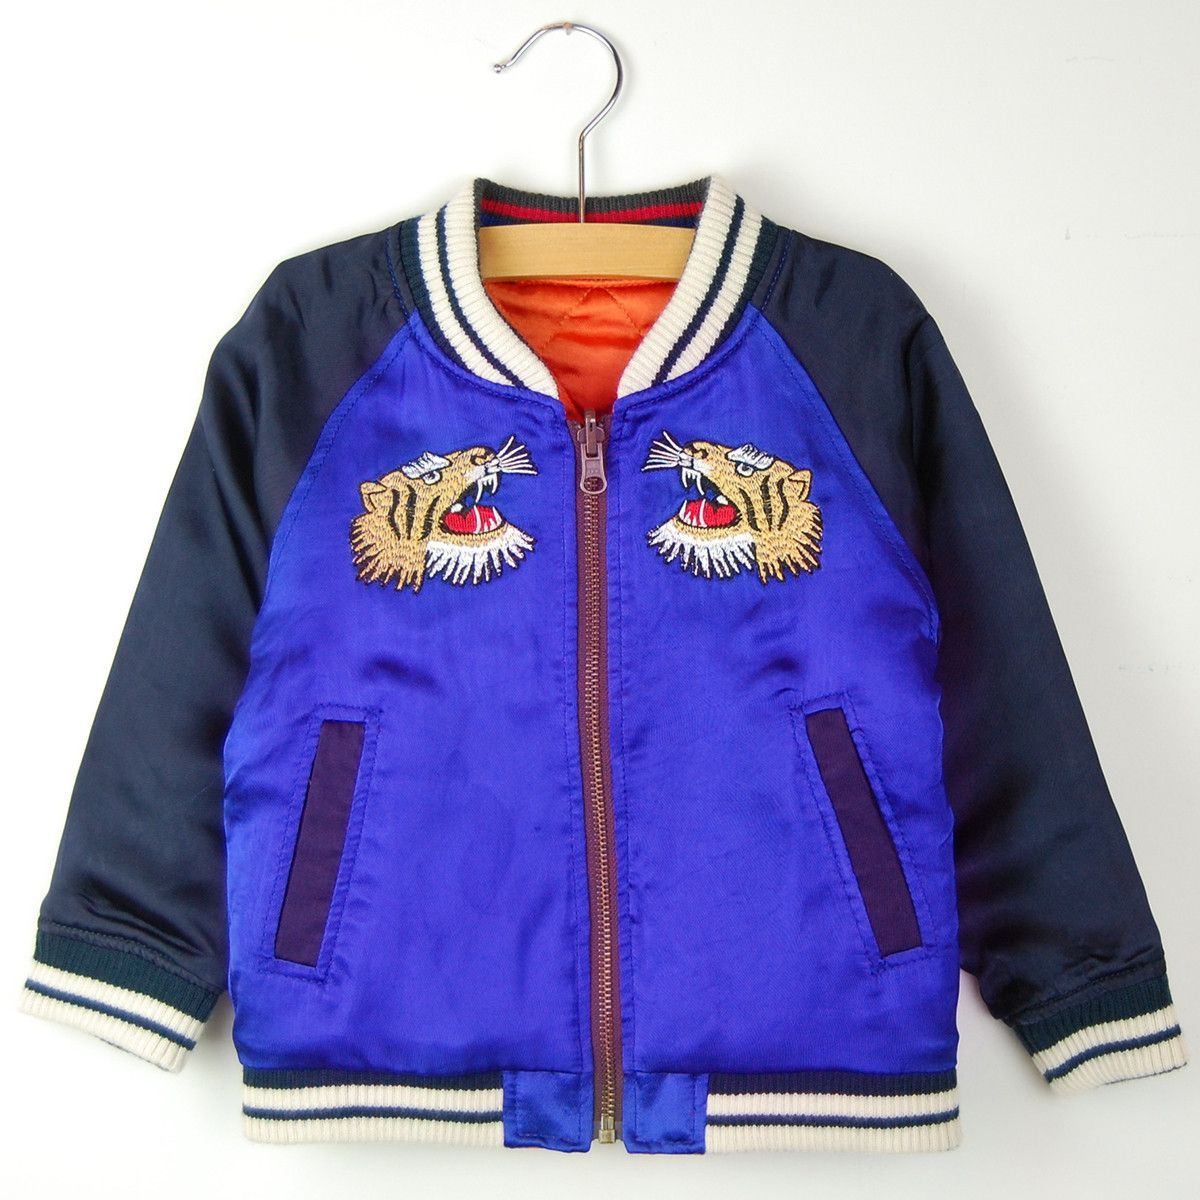 REVERSIBLE SKA-JAN JACKET - BLUE + ORANGE